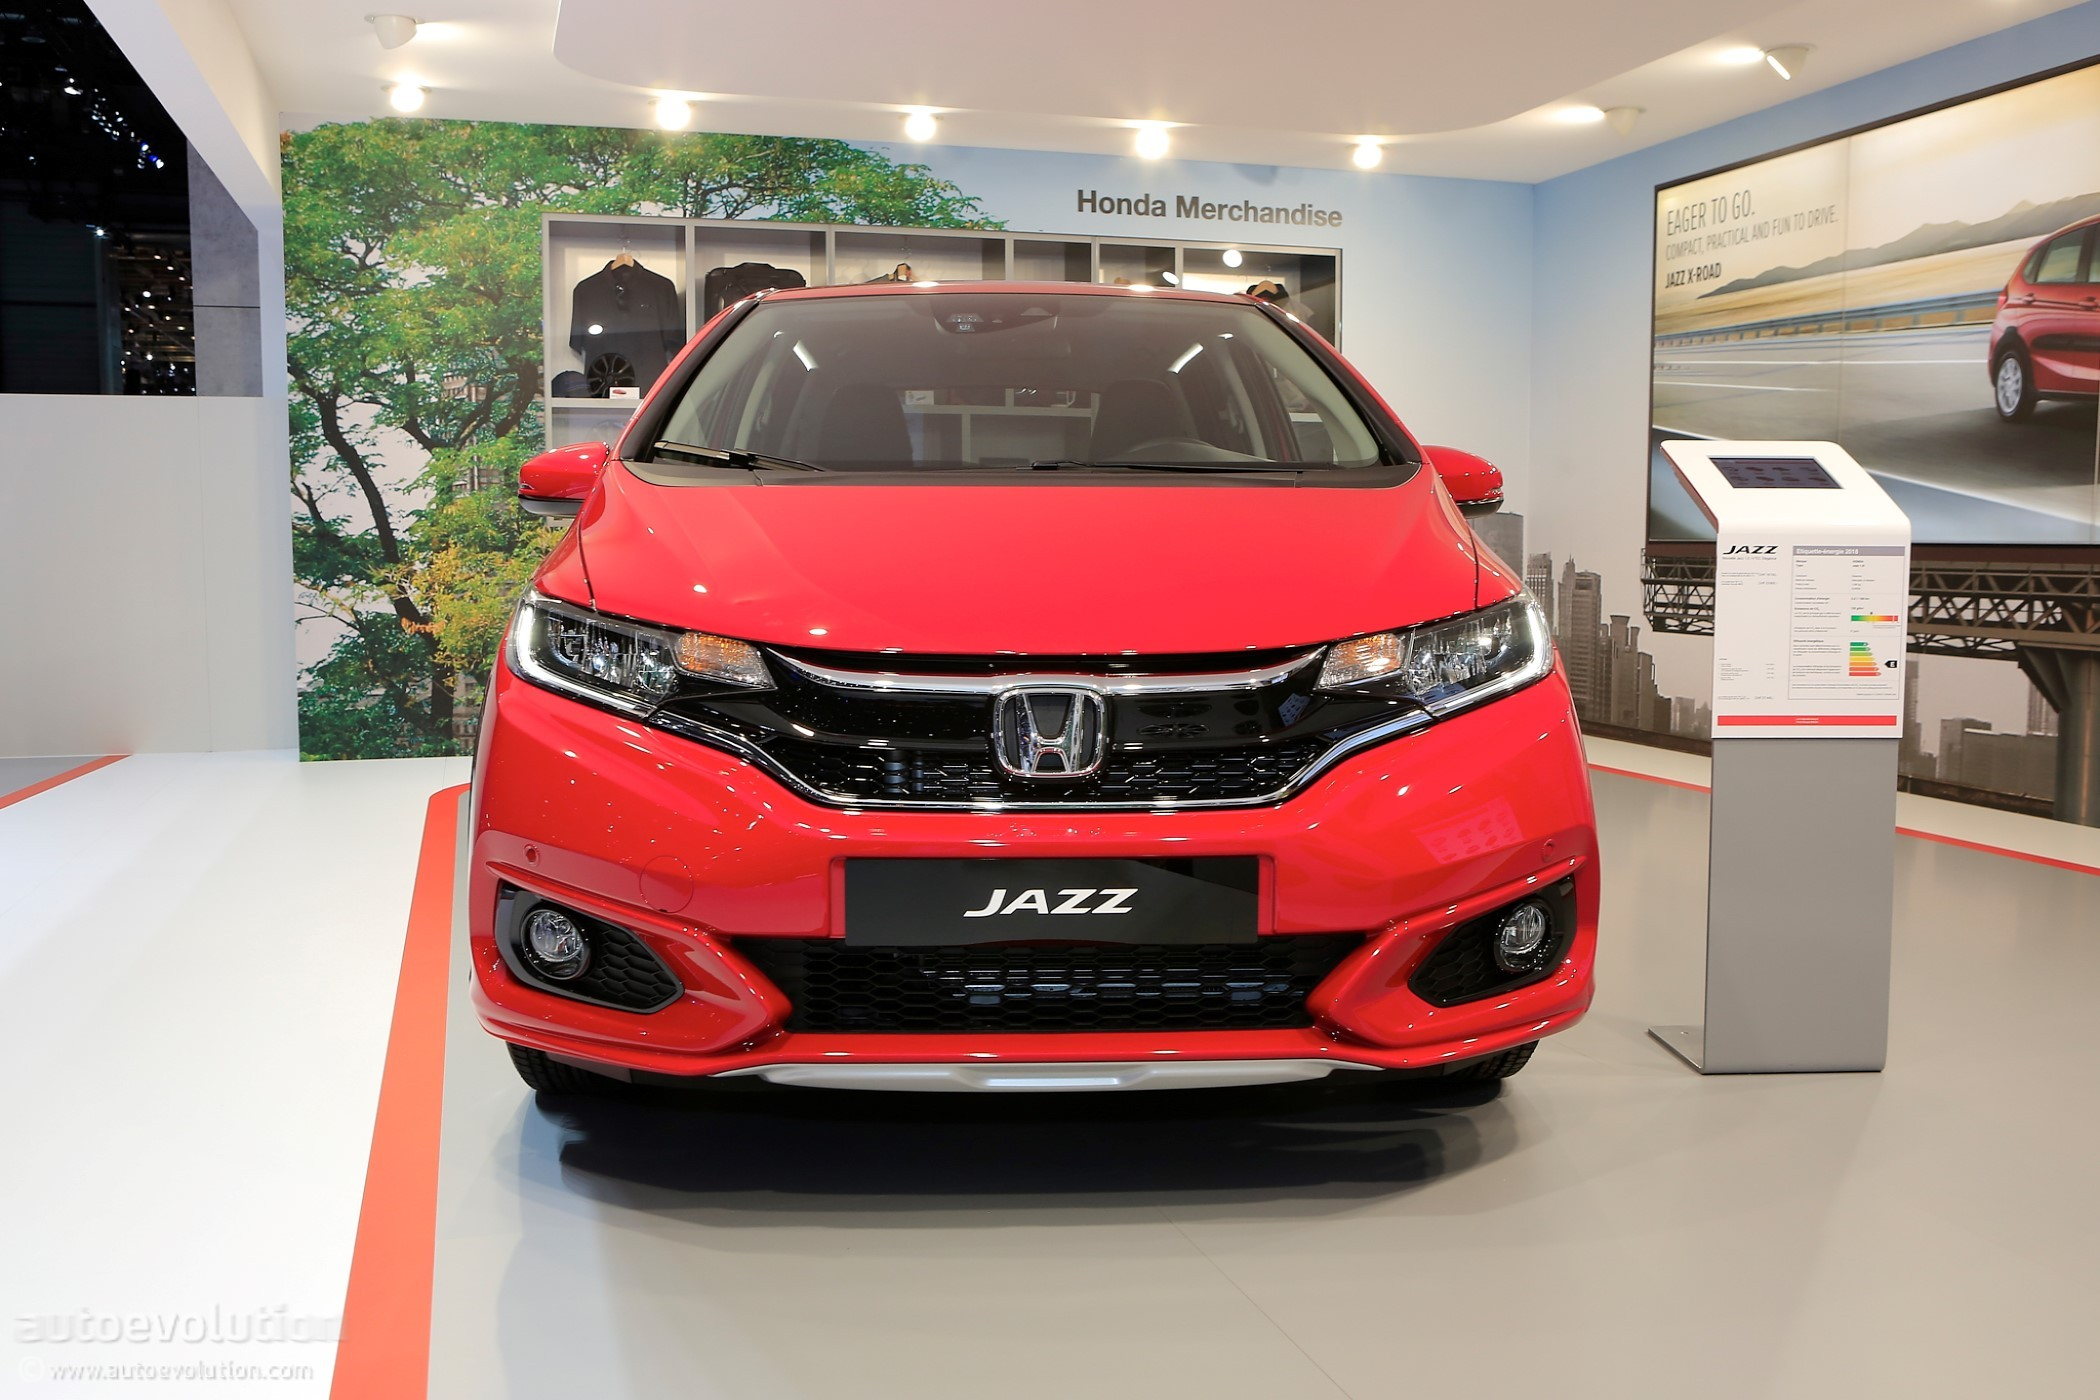 2018 honda jazz gets its rather disappointing x road suit on for geneva autoevolution. Black Bedroom Furniture Sets. Home Design Ideas